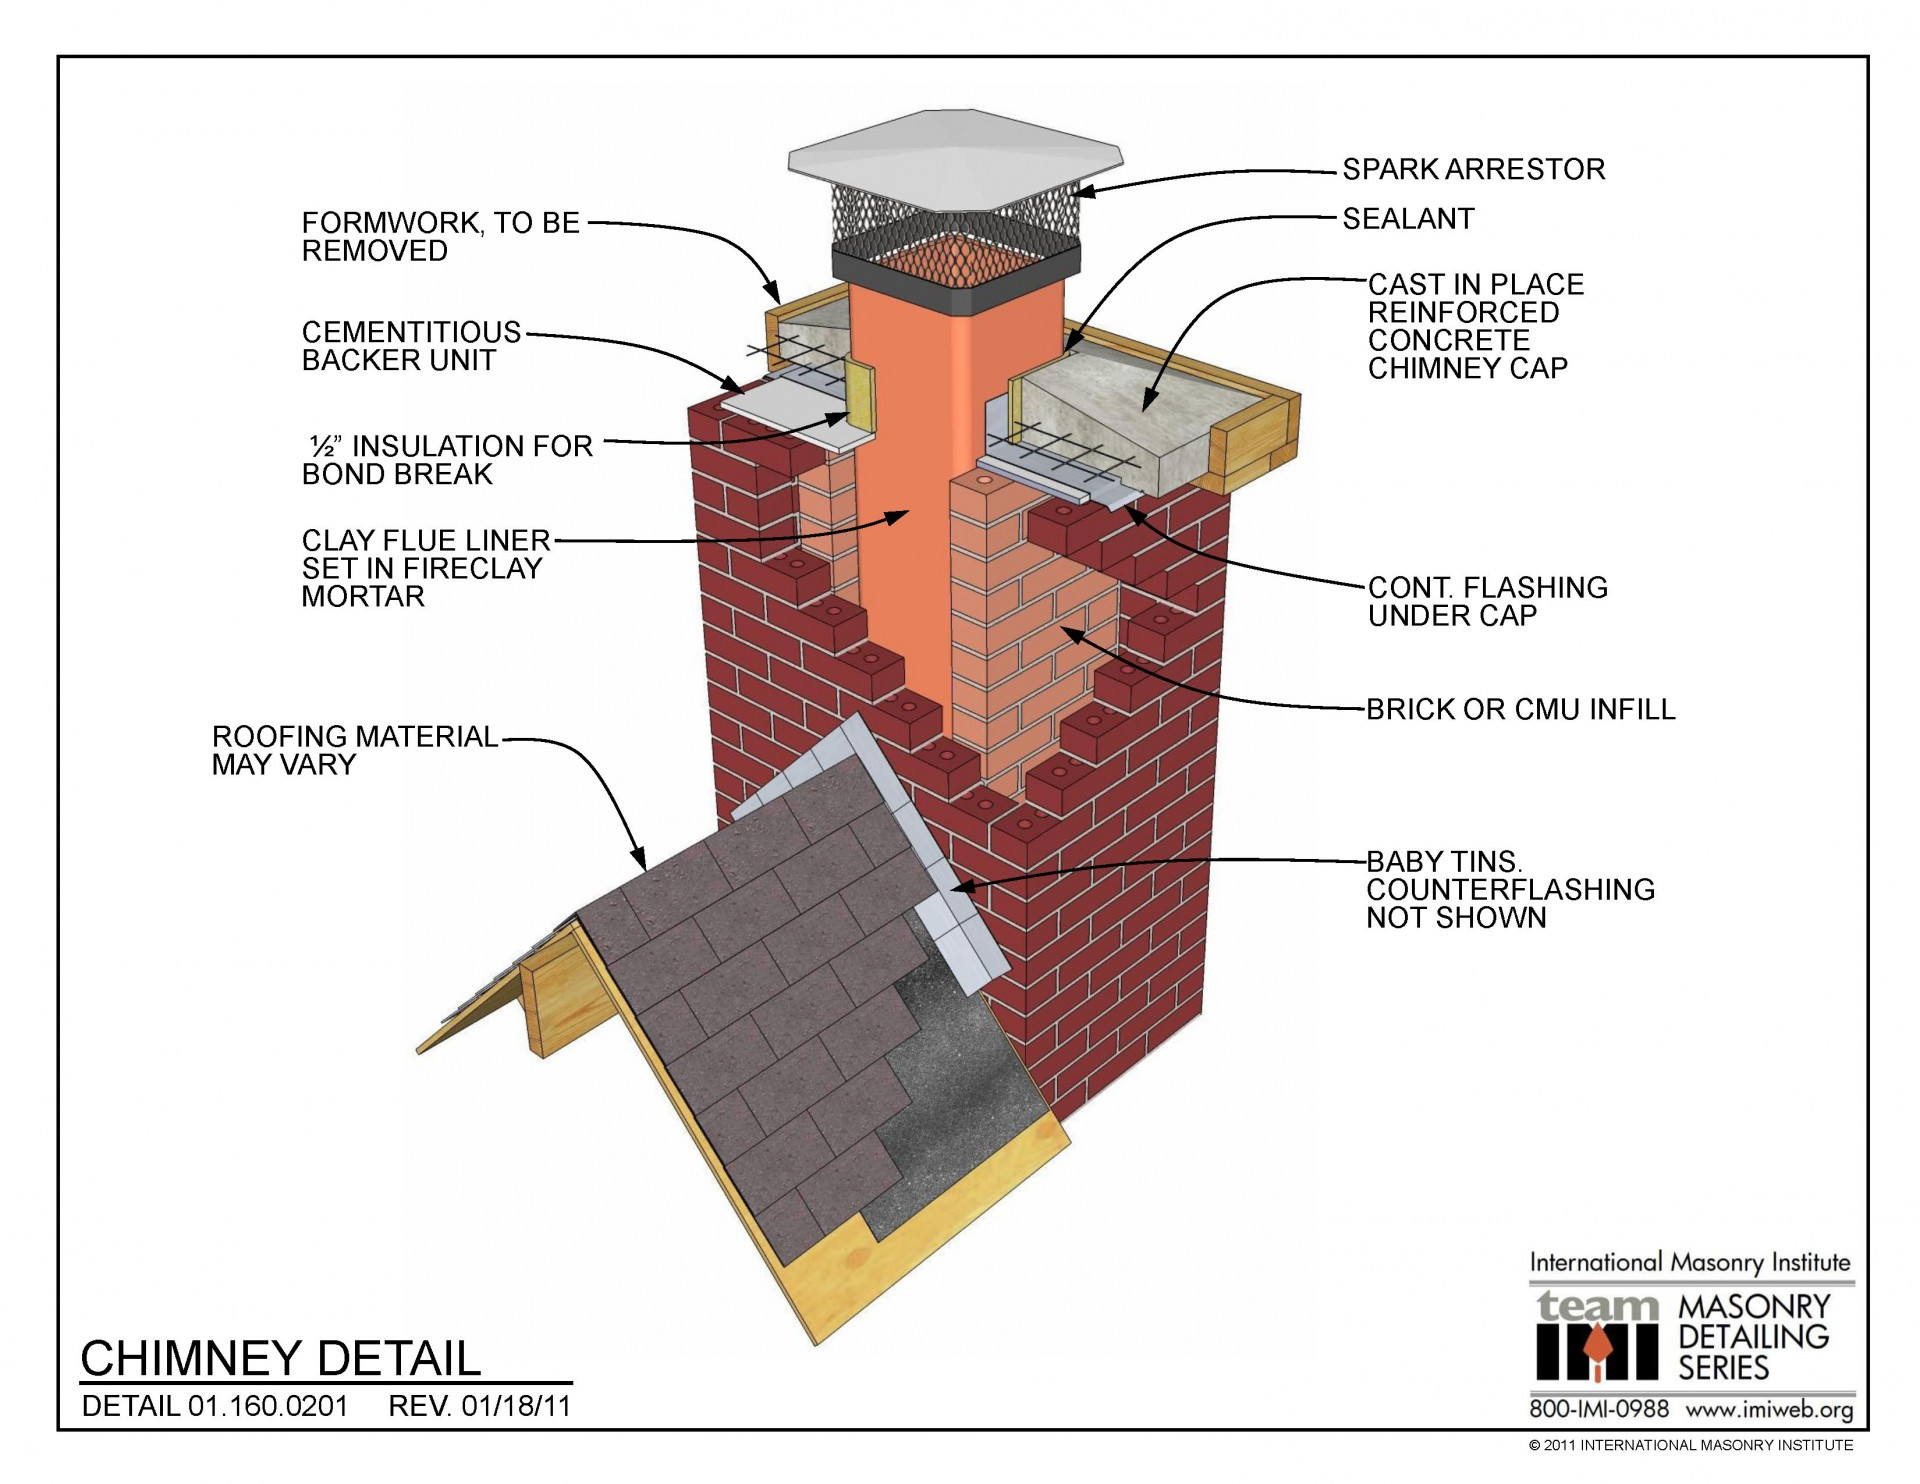 hight resolution of 01 160 0201 chimney detail